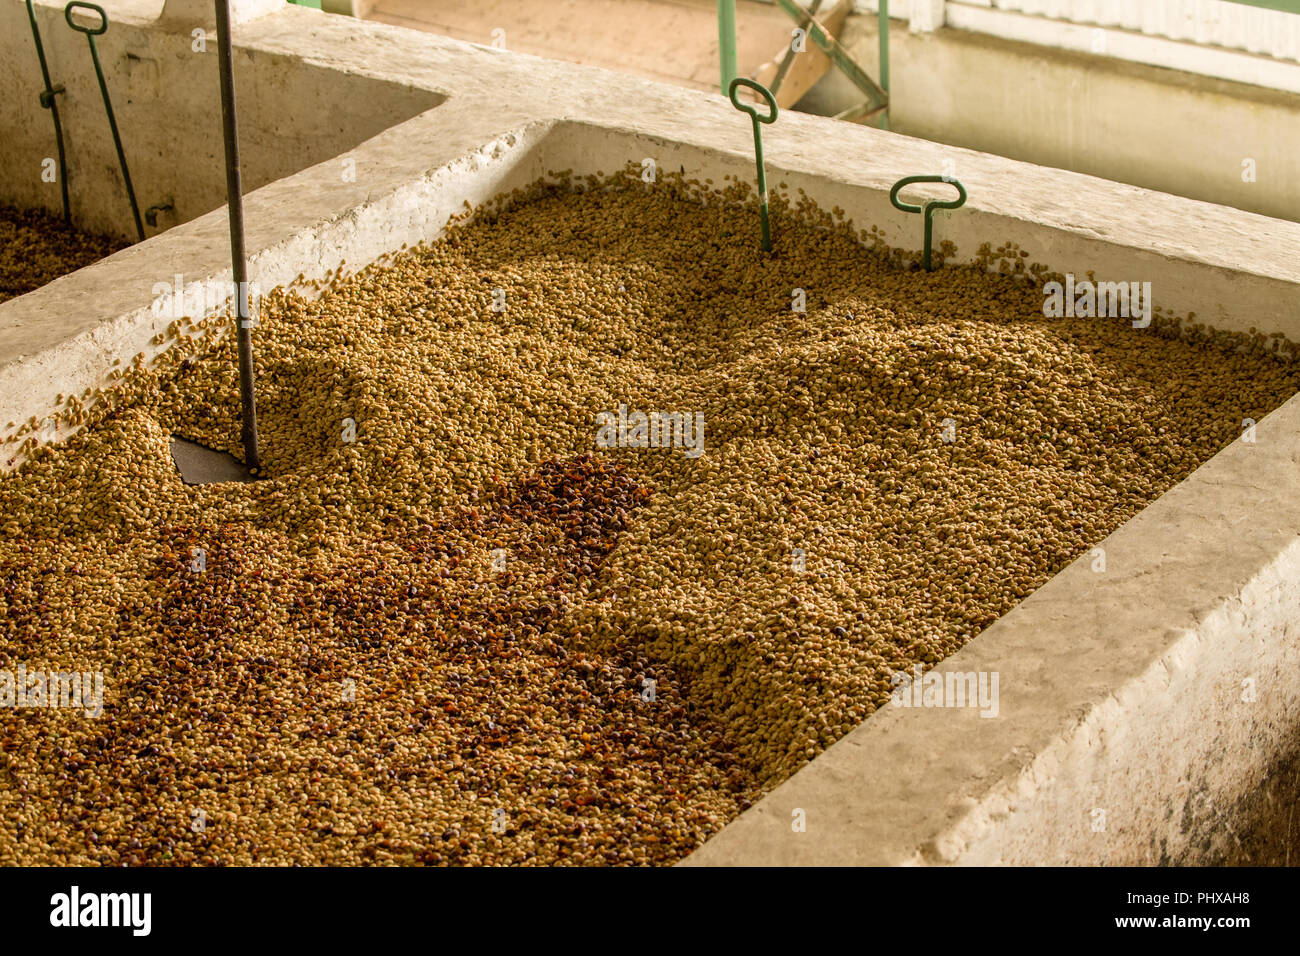 Poas Volcano area, Costa Rica, Central America.  Washing coffee beans.  The bean with its mucilage is fermented in water for at least one to two days  Stock Photo